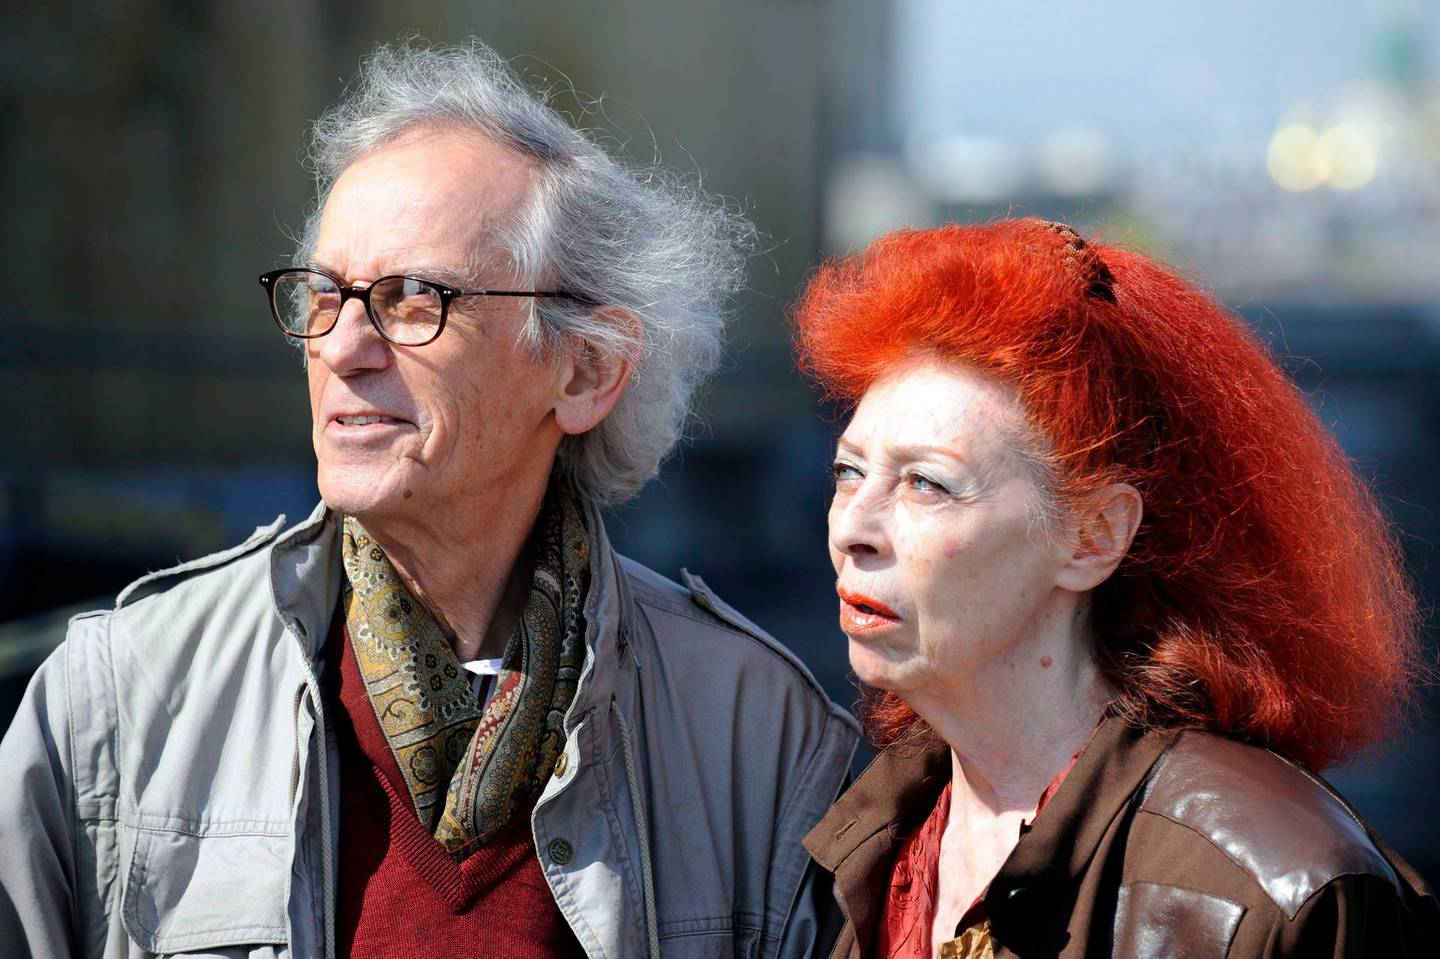 epa08456657 (FILE) - A file photo dated 15 April 2009 shows artists Christo (L) and his wife, Jeanne-Claude, attend a press conference in Vienna, Austria  (reissued 31 May 2020). According to media reports, Christo has died aged 84.  EPA/ROLAND SCHLAGER  AUSTRIA OUT *** Local Caption *** 01939030